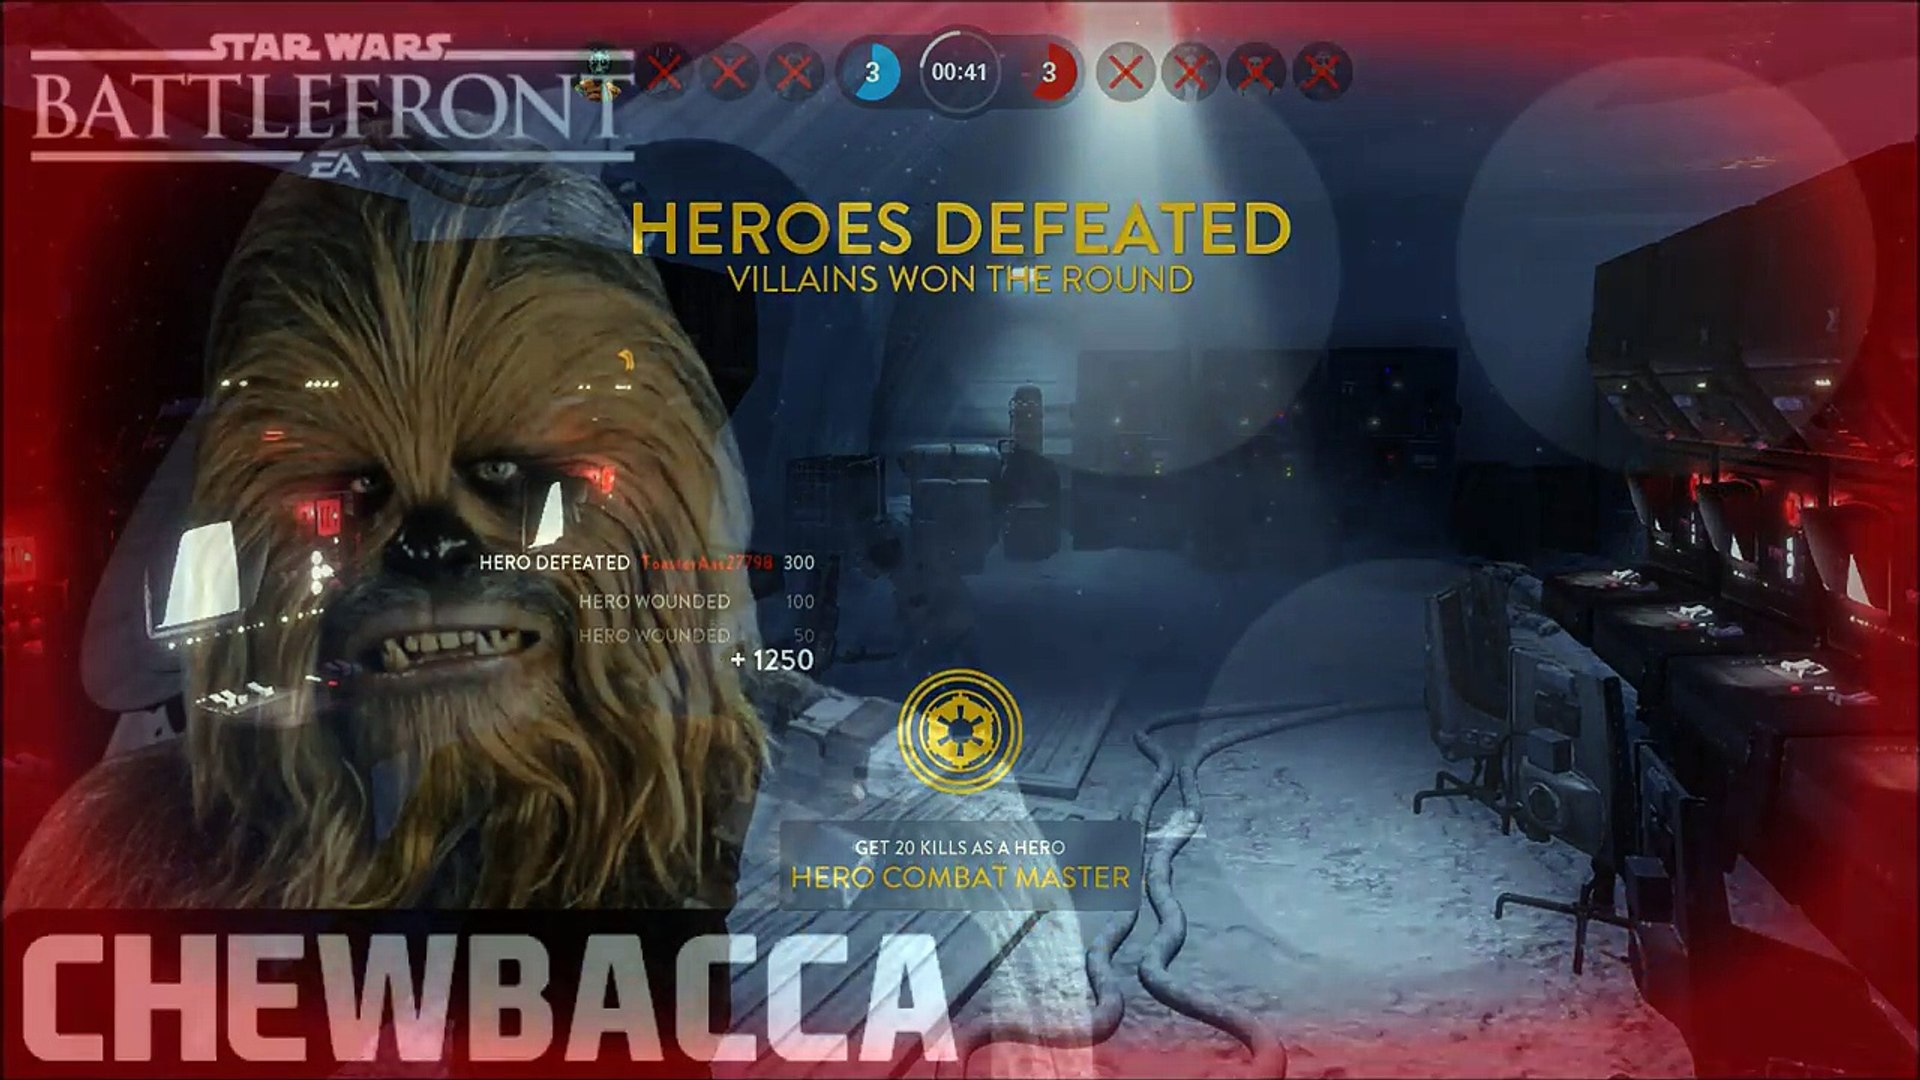 Star Wars Battlefront Chewbacca Bossk Potential Hero Abilities